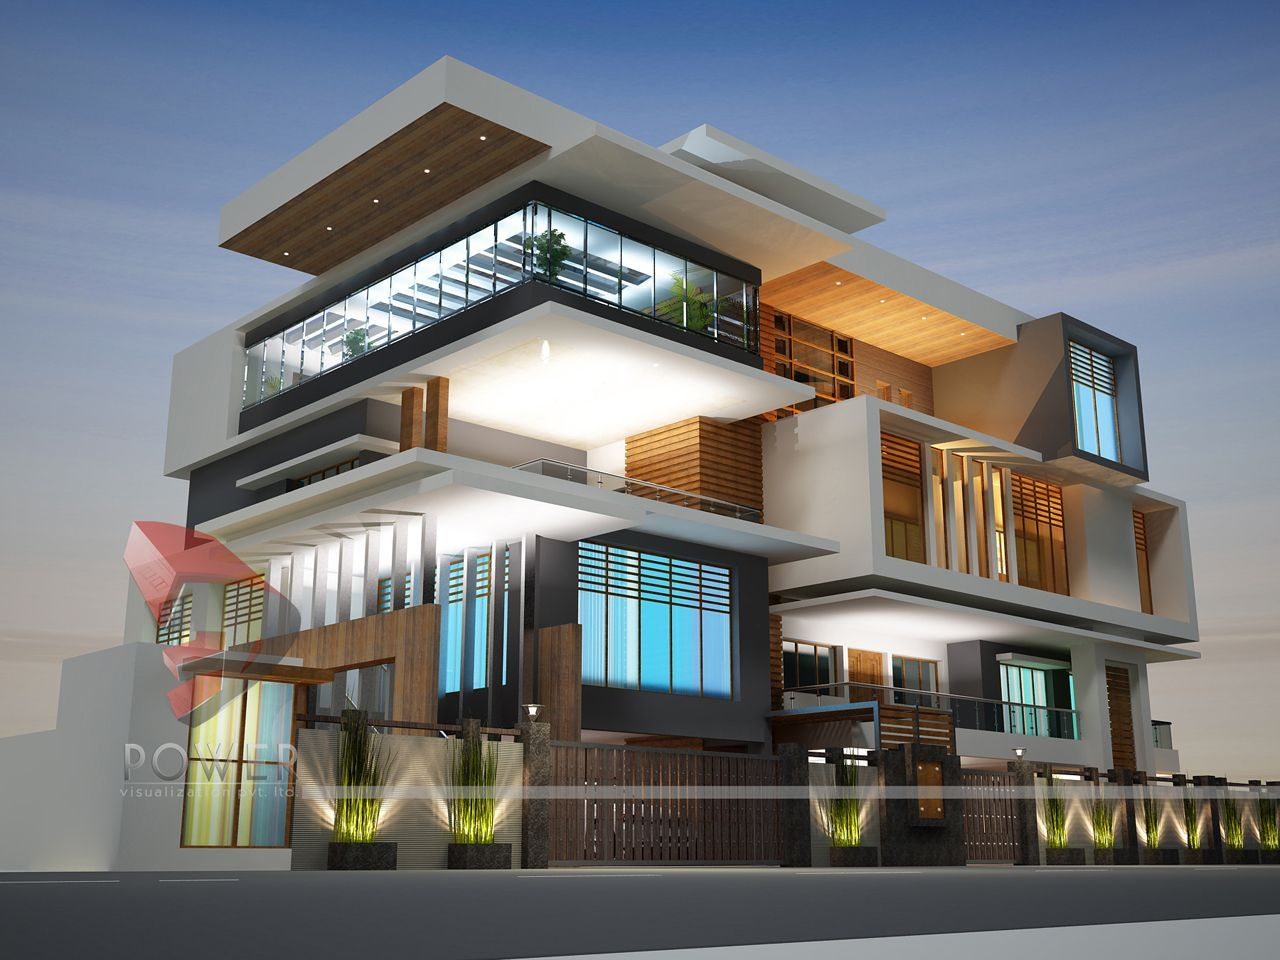 Modern house design in india architecture india modern for Architecture design for house in india